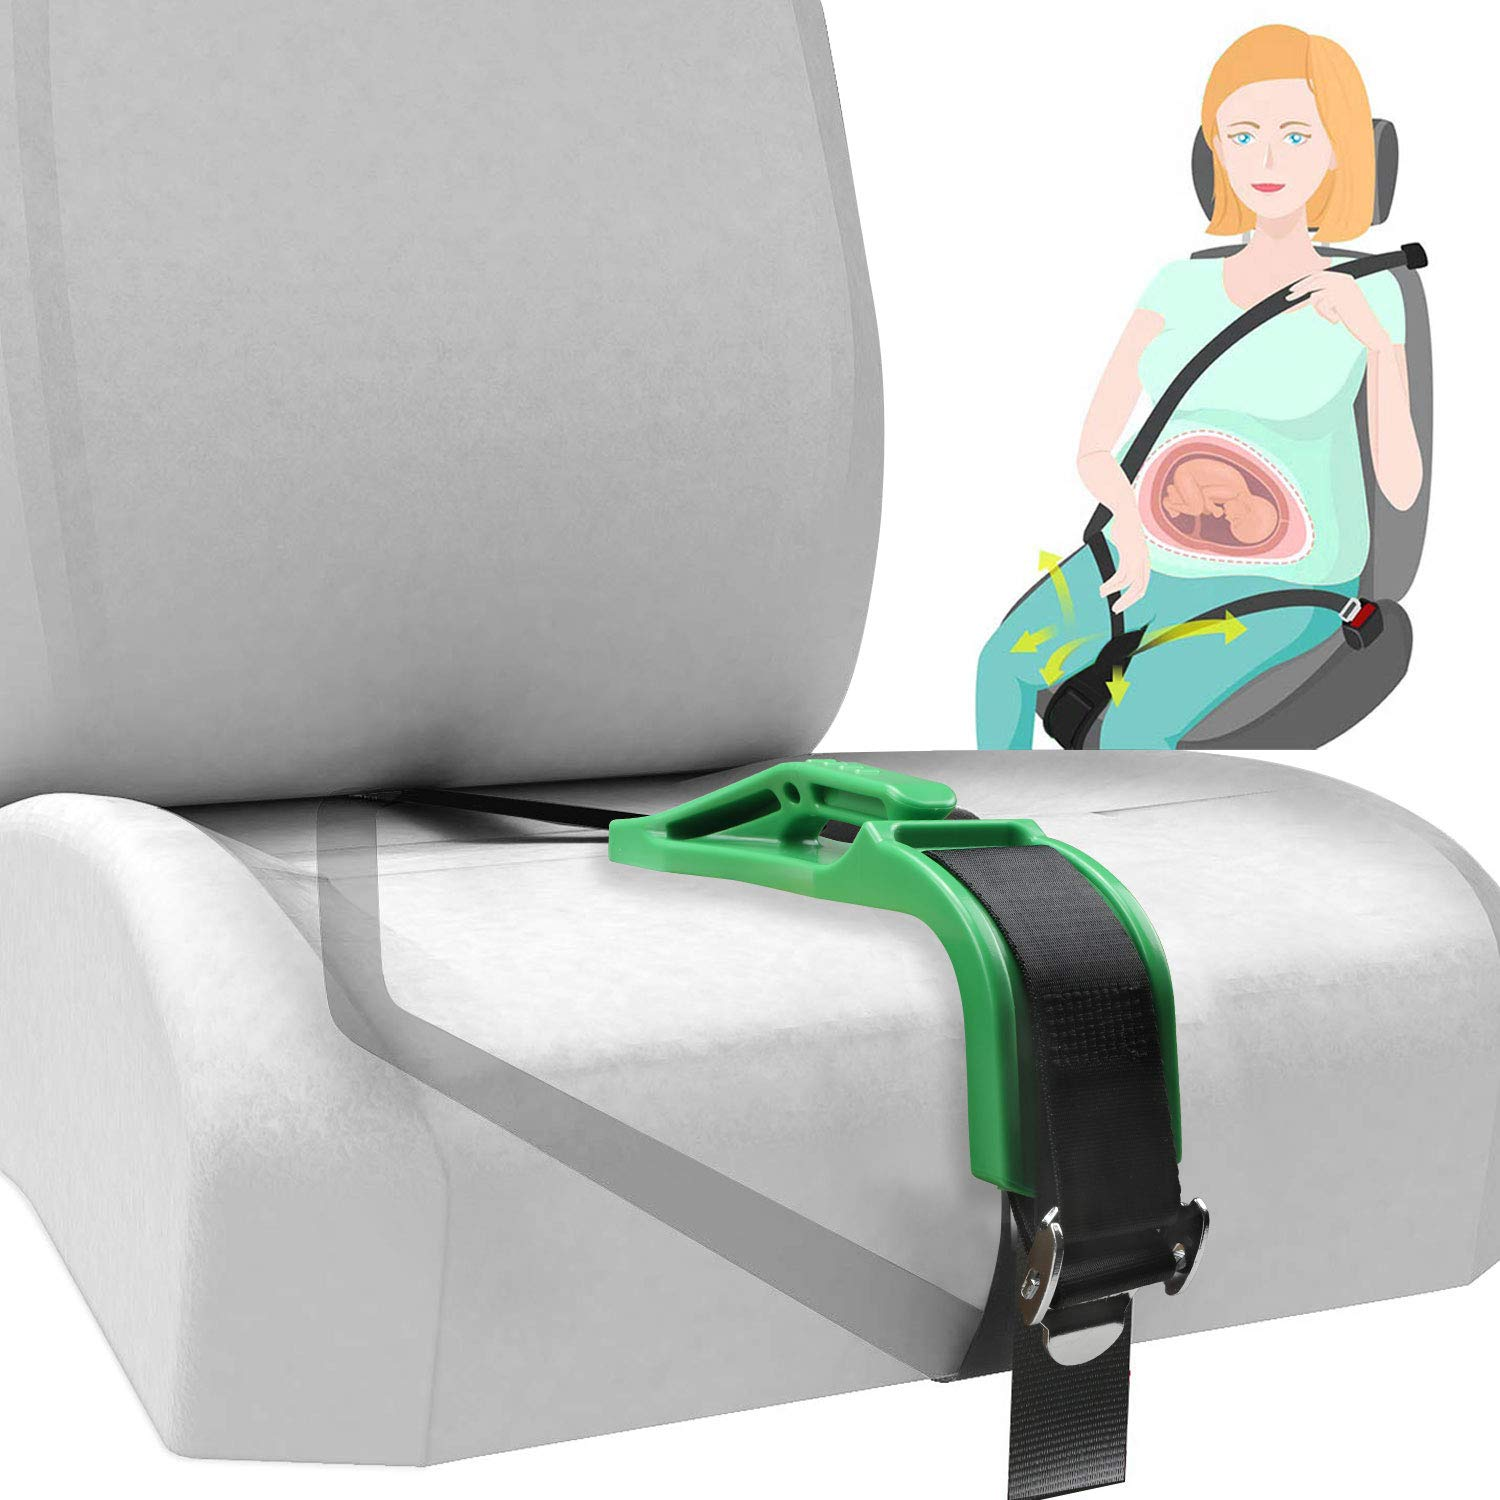 Pregnancy Seat Belt Adjuster,Baby Bump Car Seat Belt for Maternity,Safety /& Comfortable for Pregnant Women Belly, Protect Unborn Baby(Black